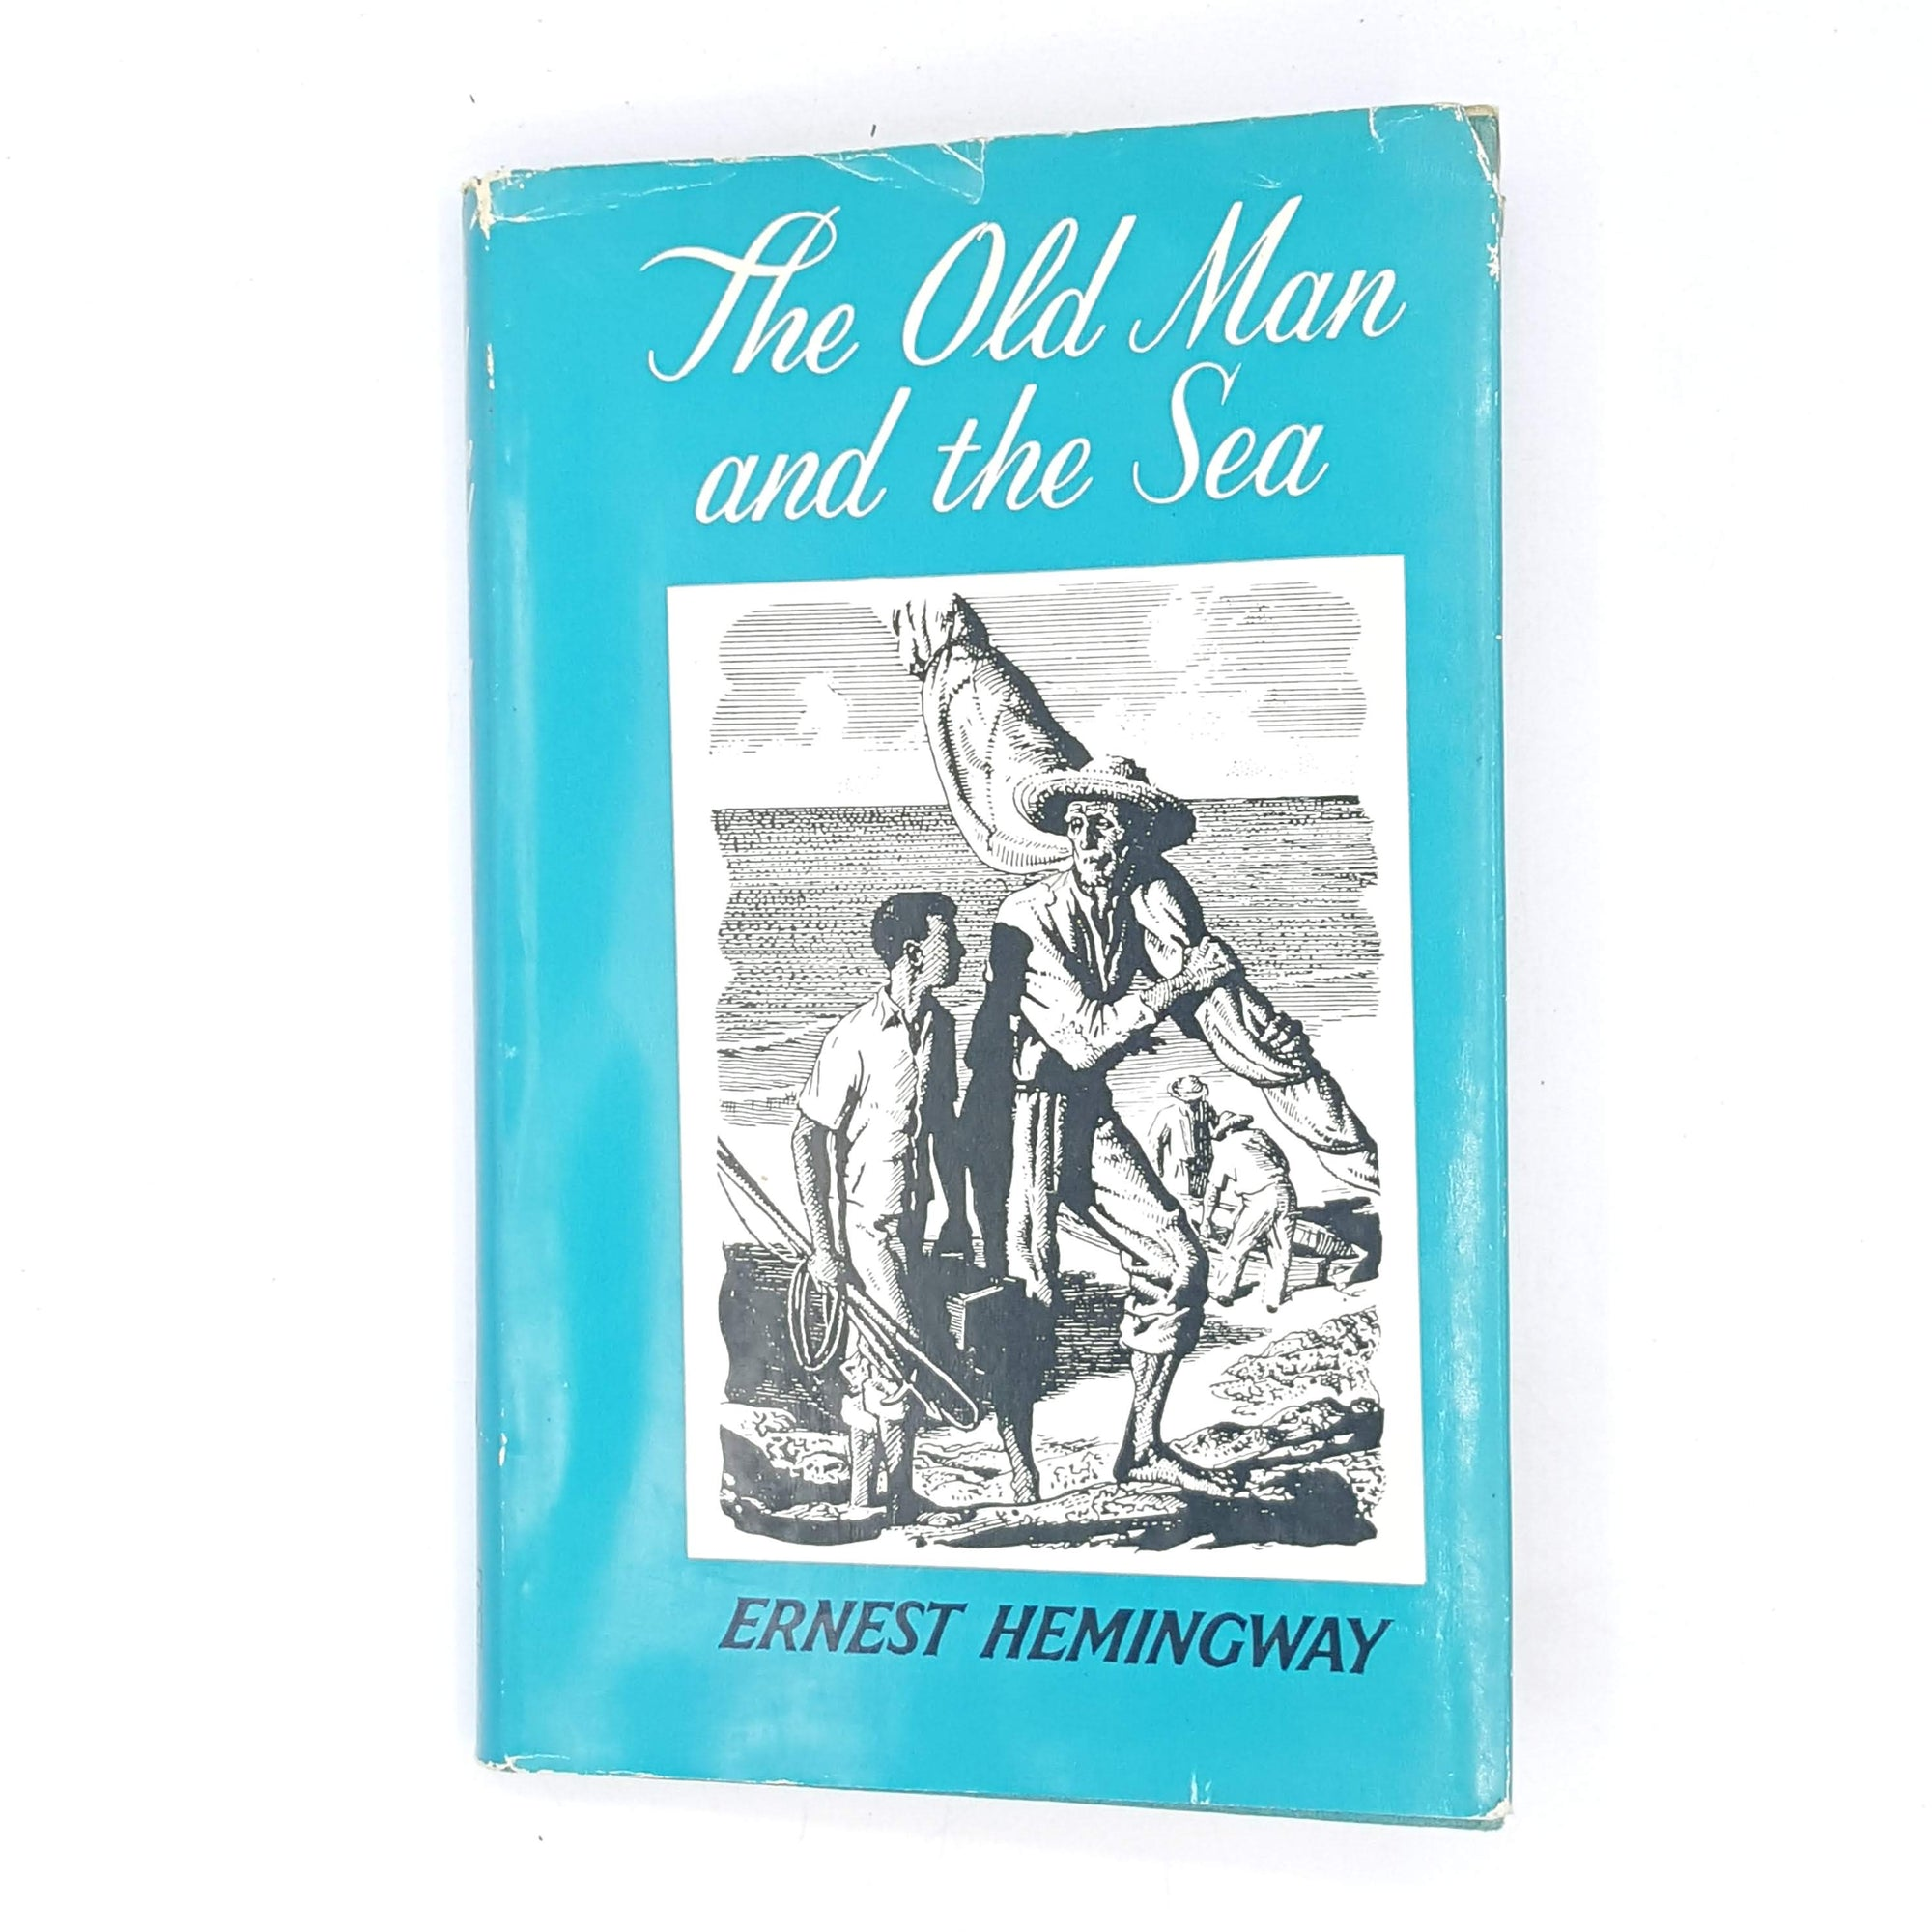 Ernest Hemingway's The Old Man and the Sea 1972